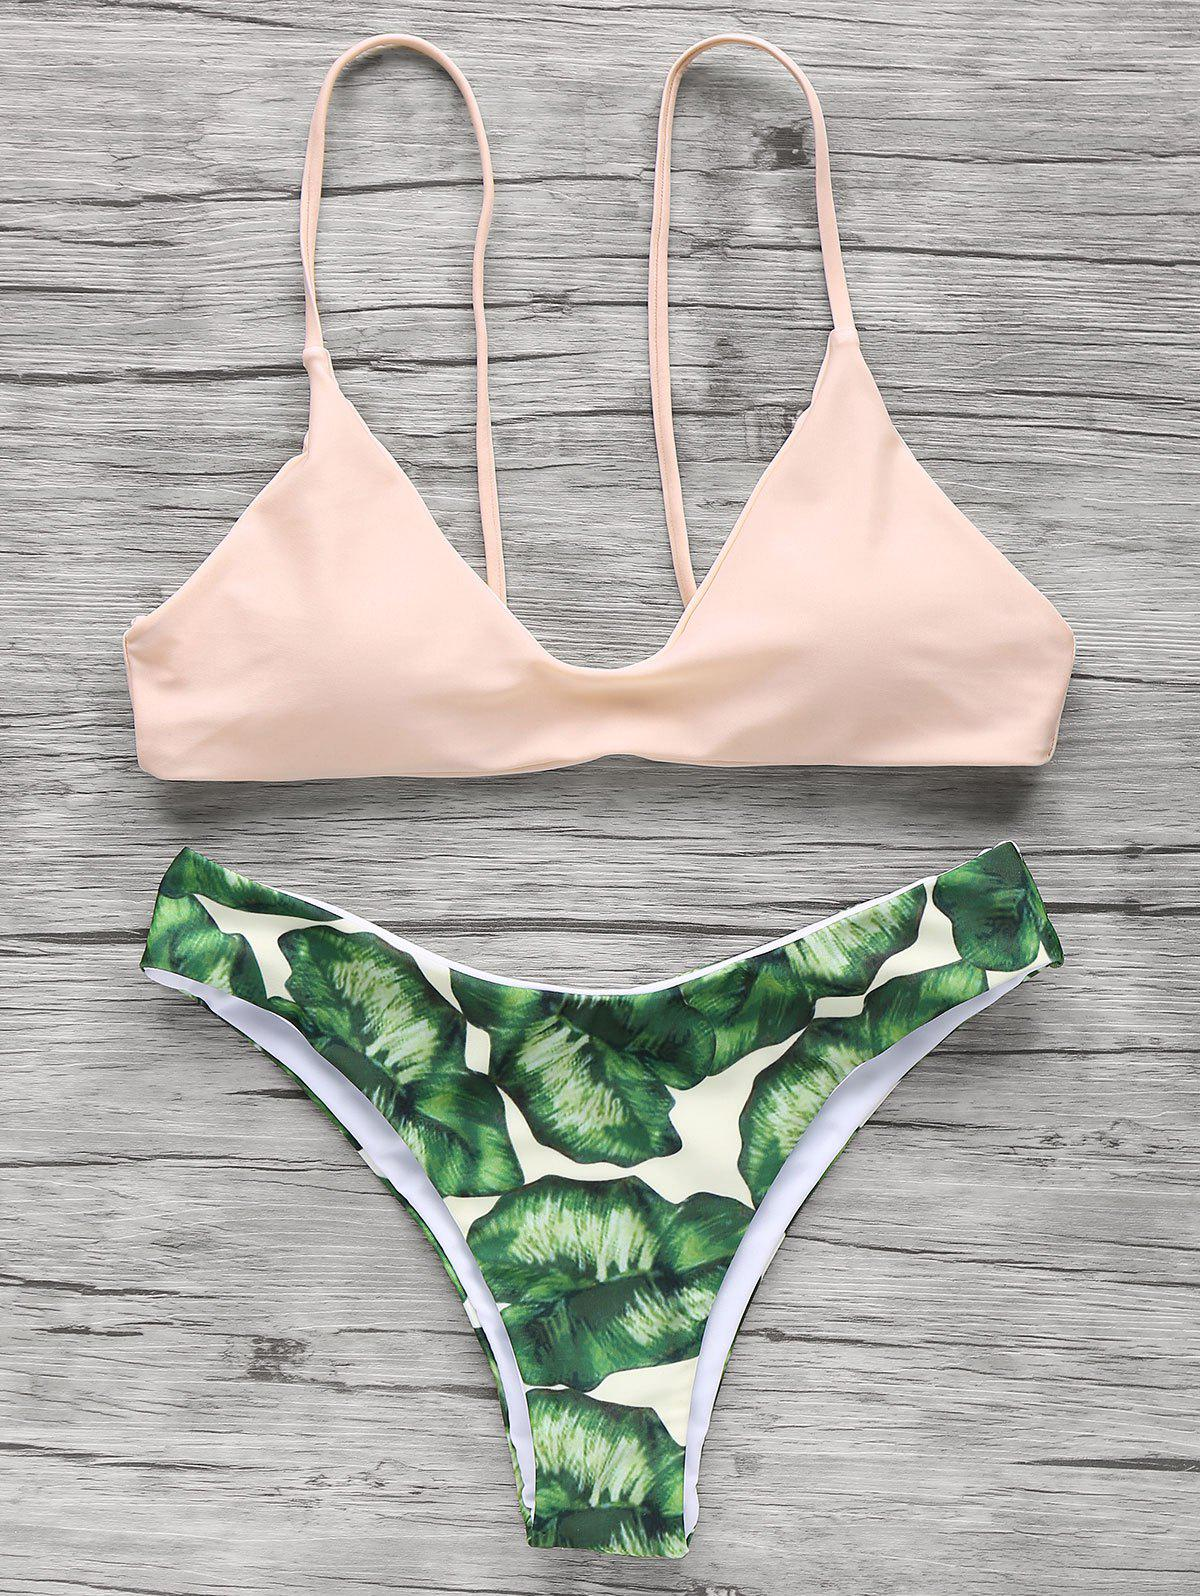 Palm Tree Spaghetti Straps BikiniWOMEN<br><br>Size: M; Color: LIGHT APRICOT PINK; Swimwear Type: Bikini; Gender: For Women; Material: Polyester; Bra Style: Padded; Support Type: Wire Free; Neckline: Spaghetti Straps; Pattern Type: Print; Waist: Natural; Elasticity: Elastic; Weight: 0.2700kg; Package Contents: 1 x Bra  1 x Briefs;